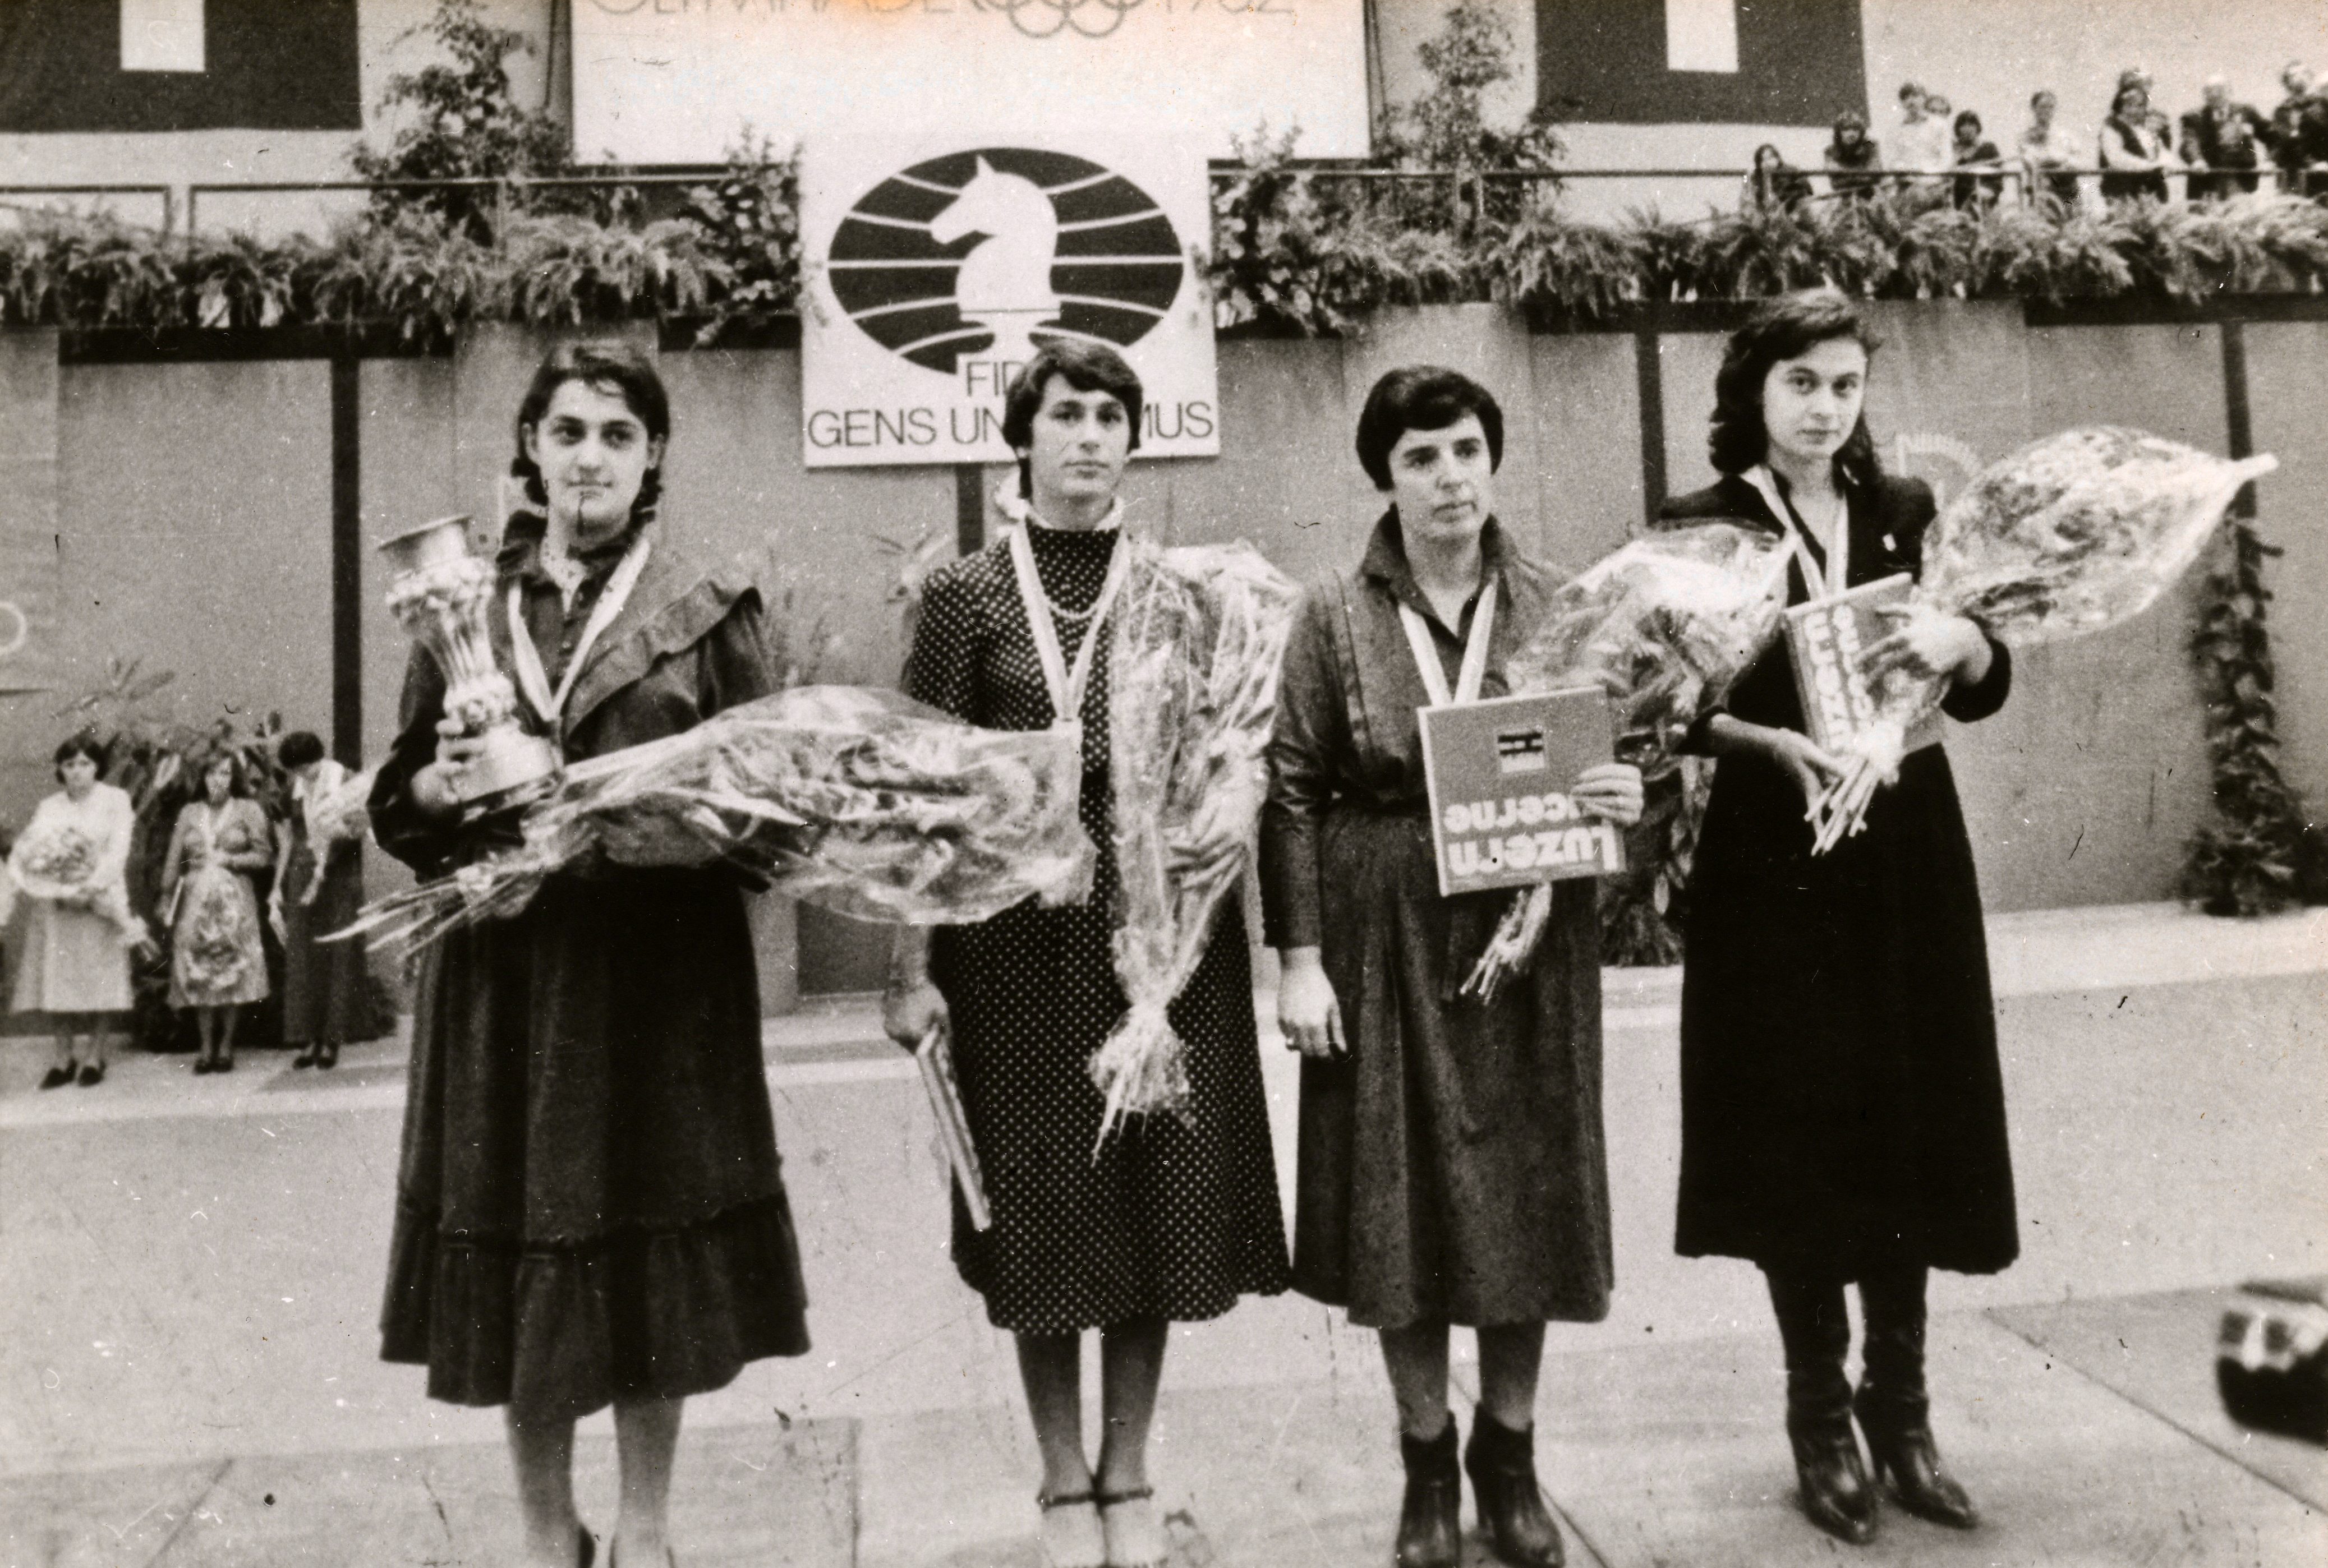 From left to right: Maia Chiburdanidse, Nana Alexandria, Nona Gaprindashvili and Nana Ioseliani Chess Olympiad, Lucerne 1982